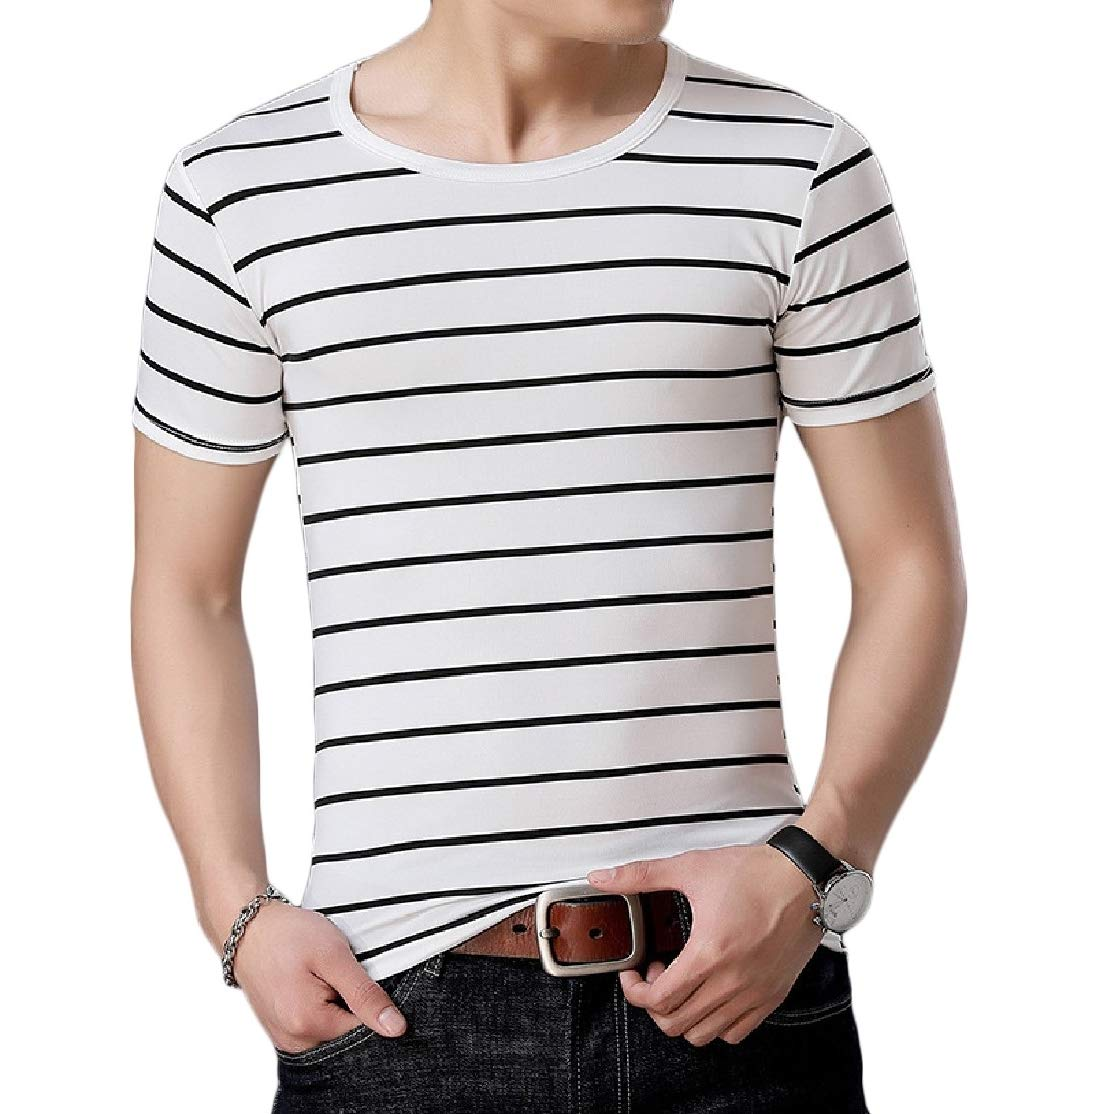 Comaba Men Summer Striped Breathable Short Sleeve Tshirt Tops Tees